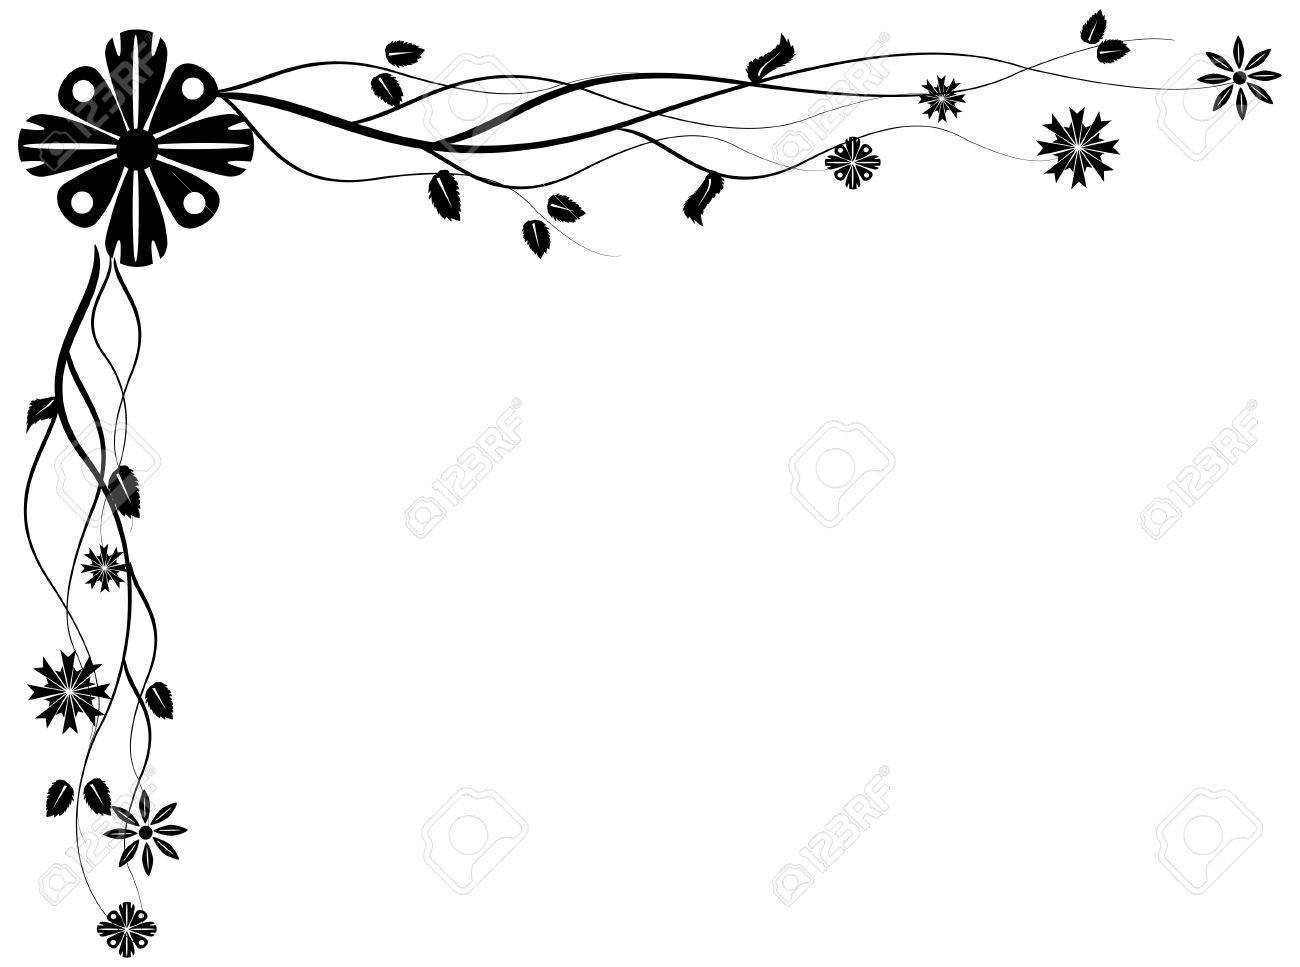 vectorized floral corner design element you can resize and color